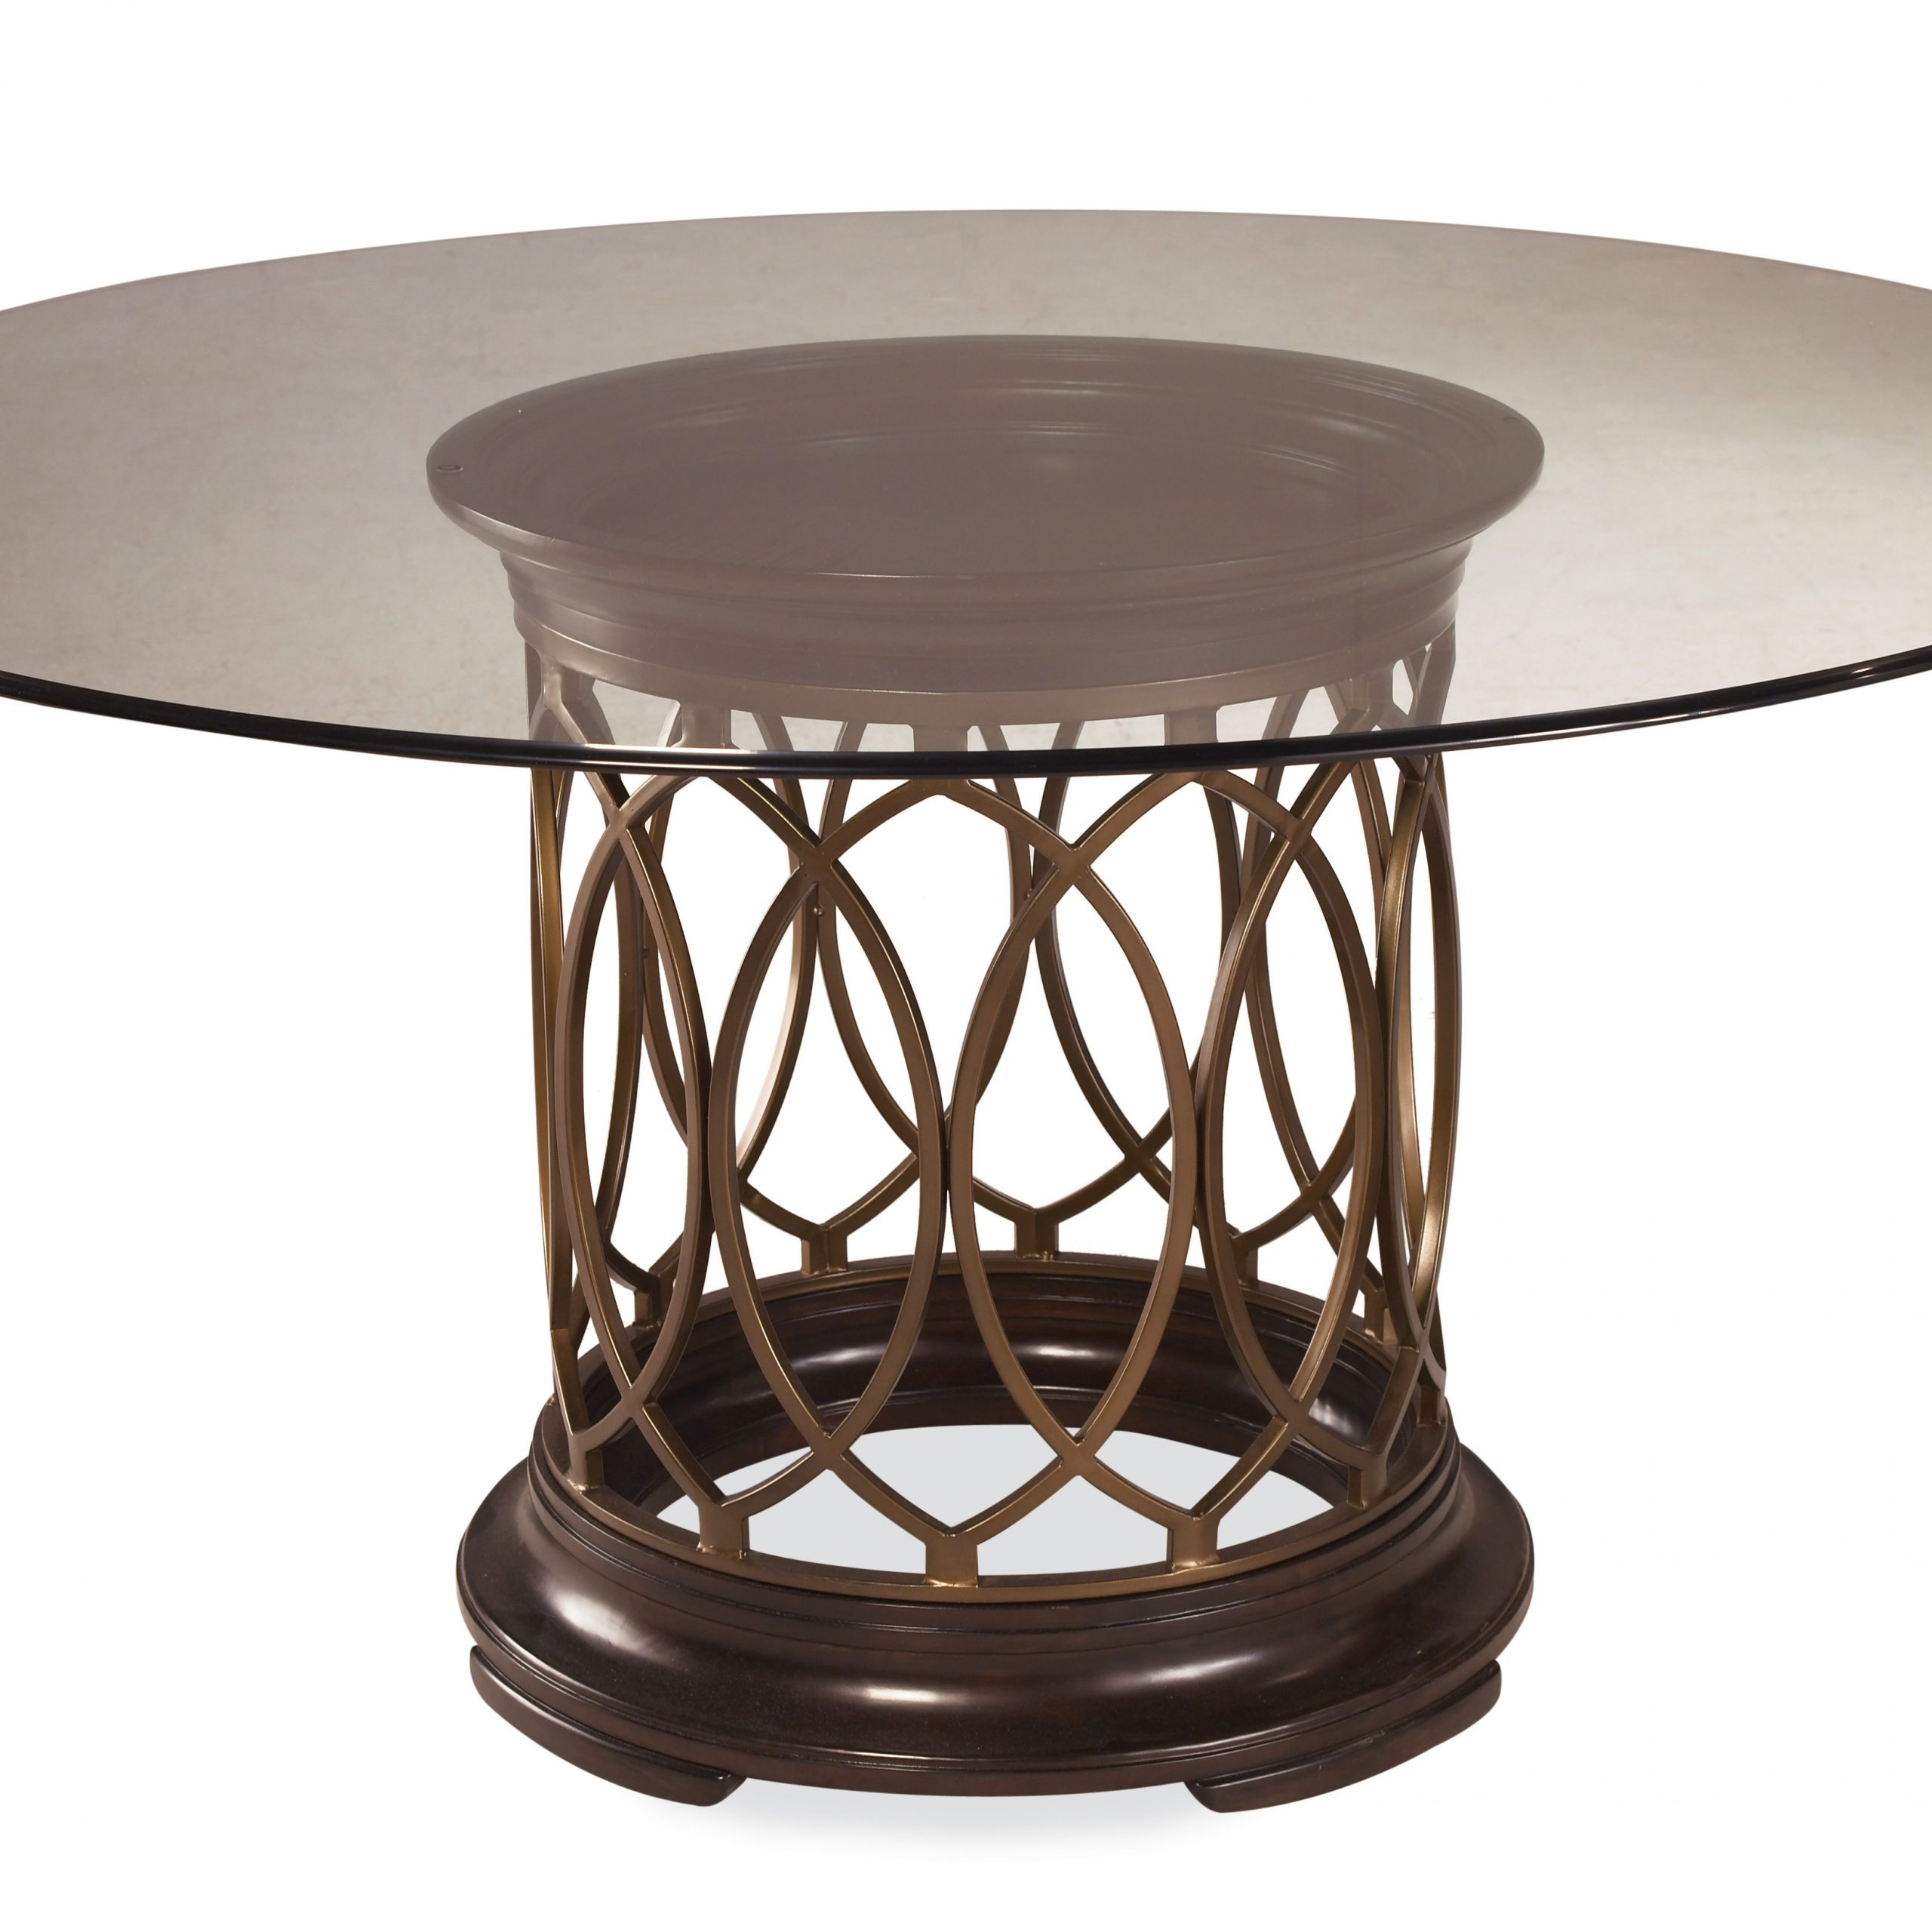 Dining Table Bases For Glass Tops (View 9 of 30)